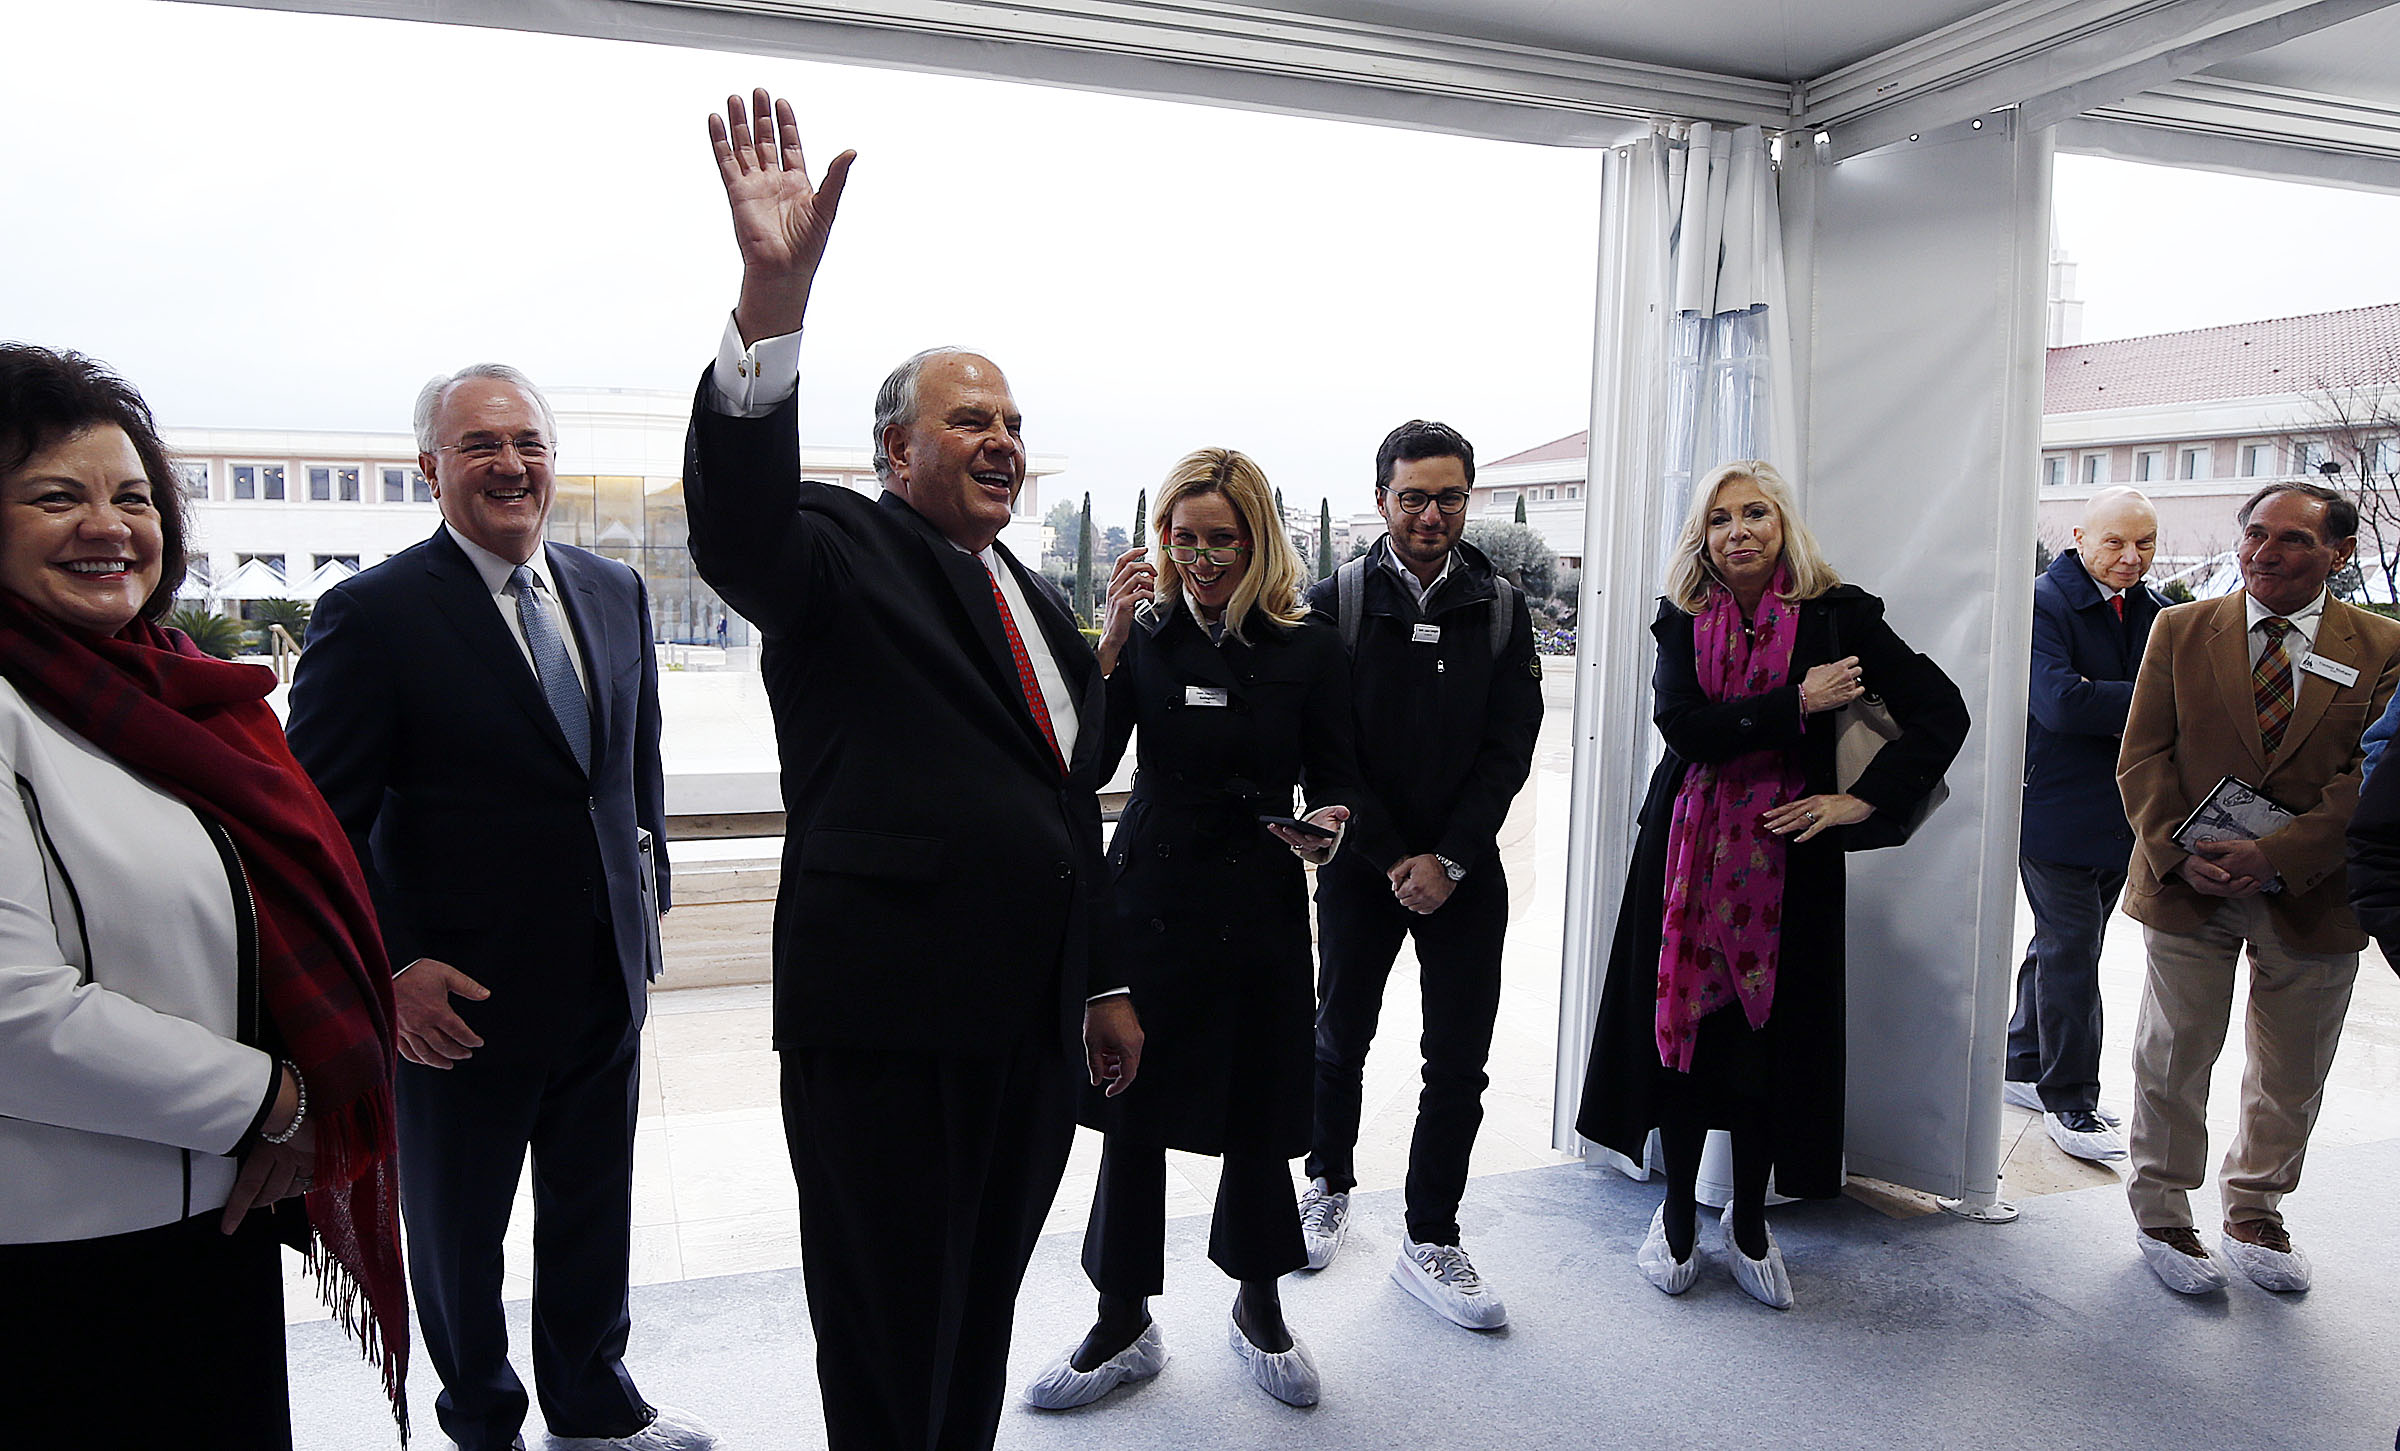 Elder Ronald A. Rasband of the Quorum of the Twelve Apostles of The Church of Jesus Christ of Latter-day Saints leads a tour during the open house for the Rome Italy Temple on Monday, Jan. 14, 2019.